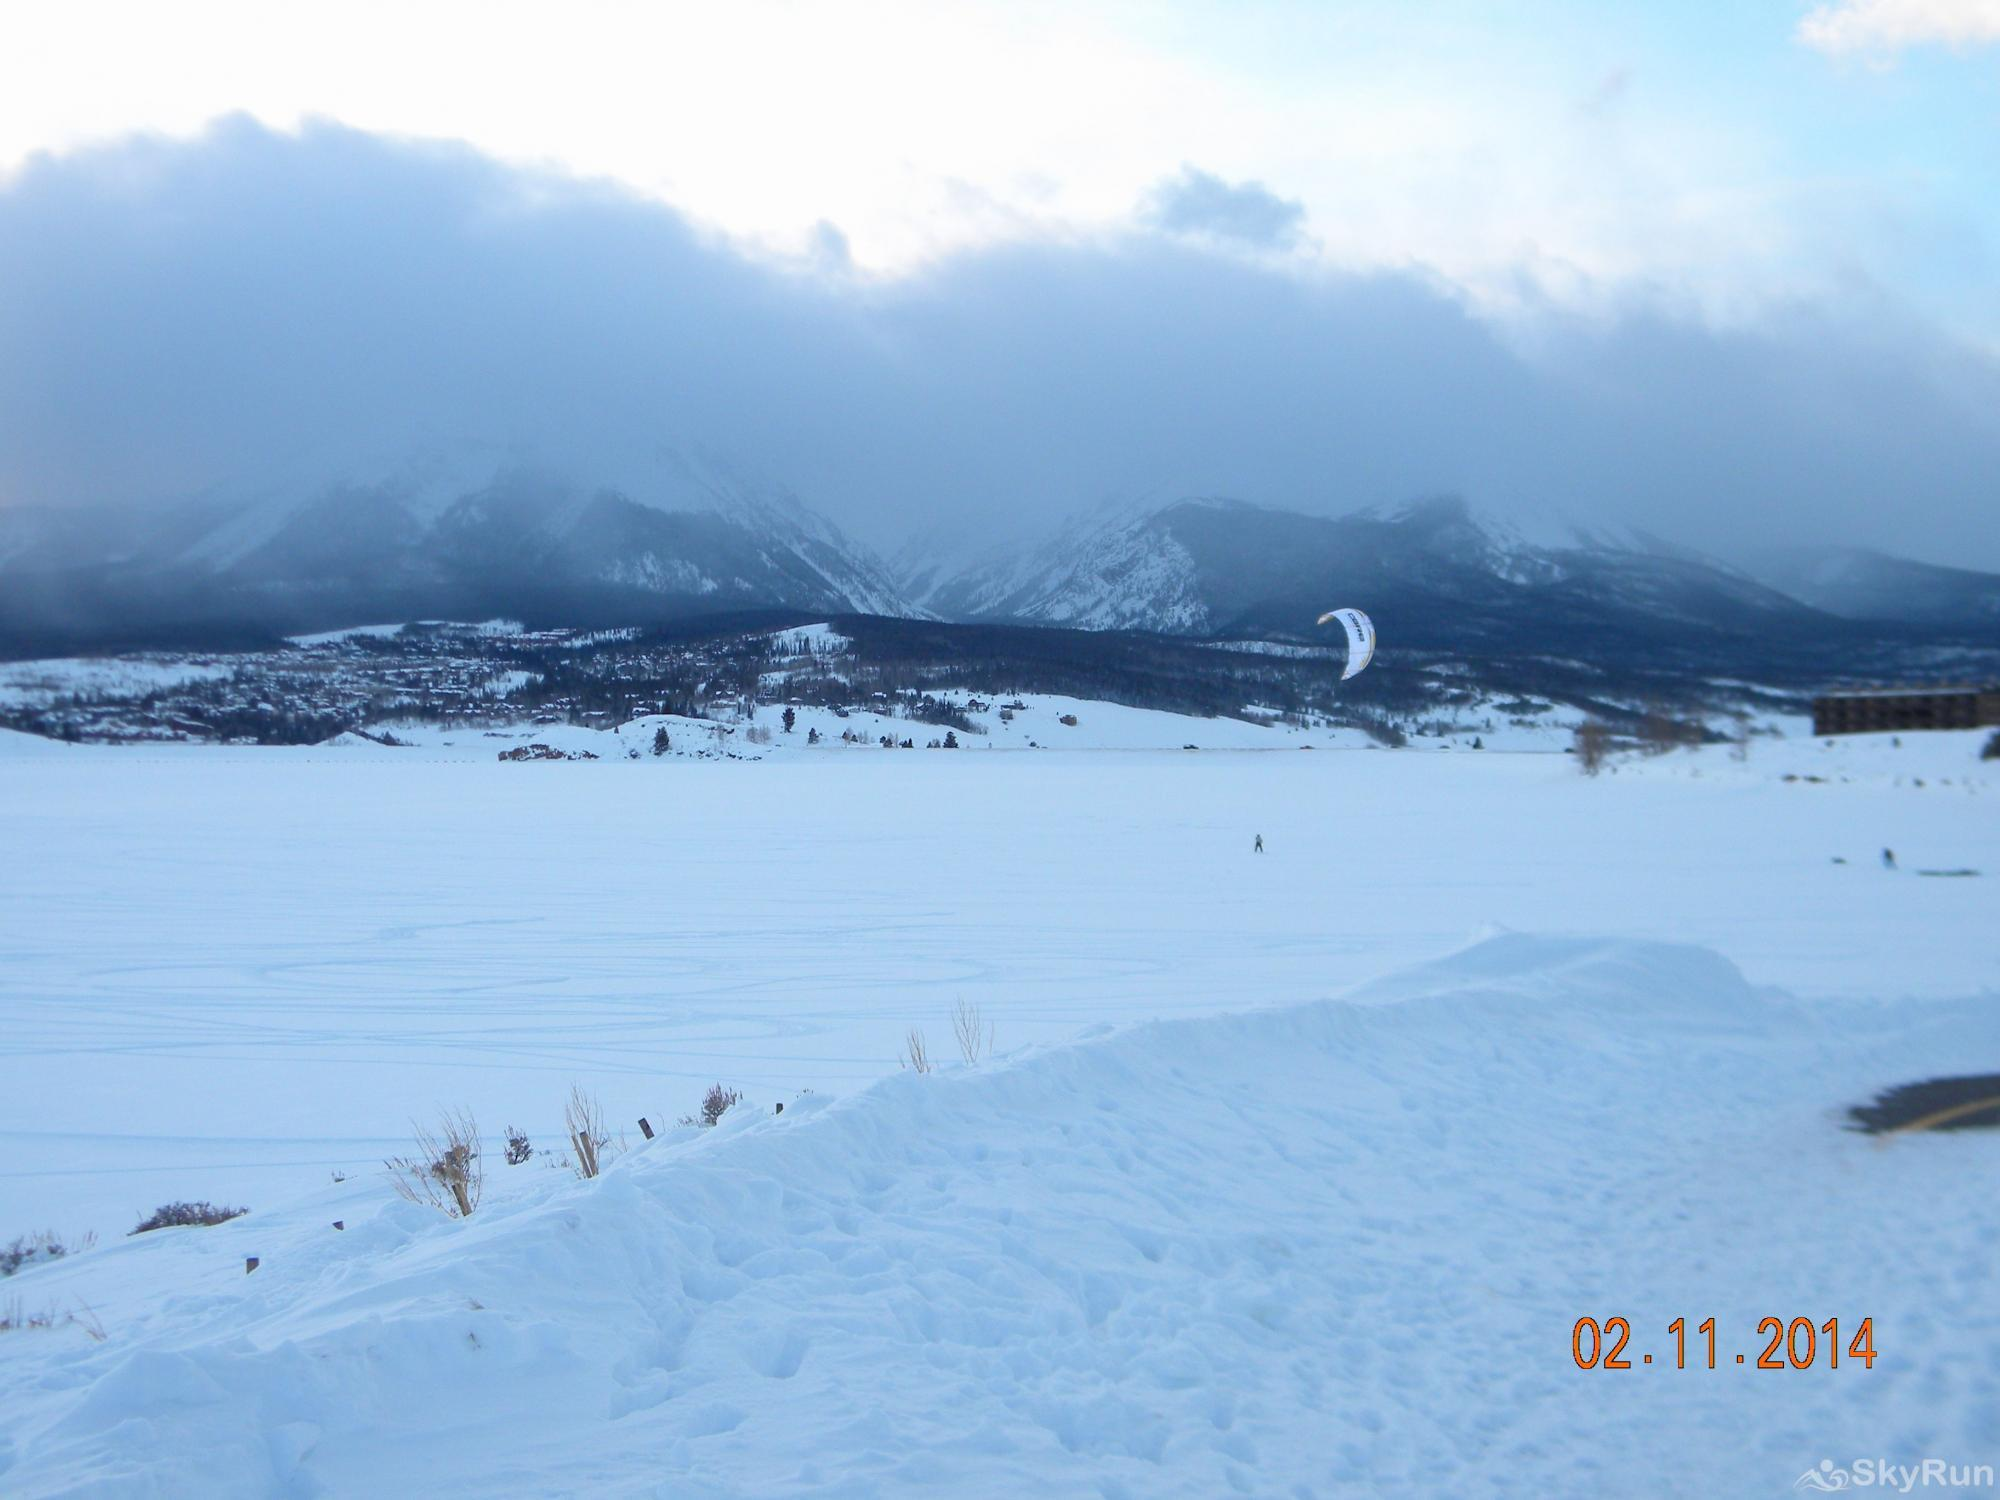 315 Woodbridge Winter activities on Lake Dillon